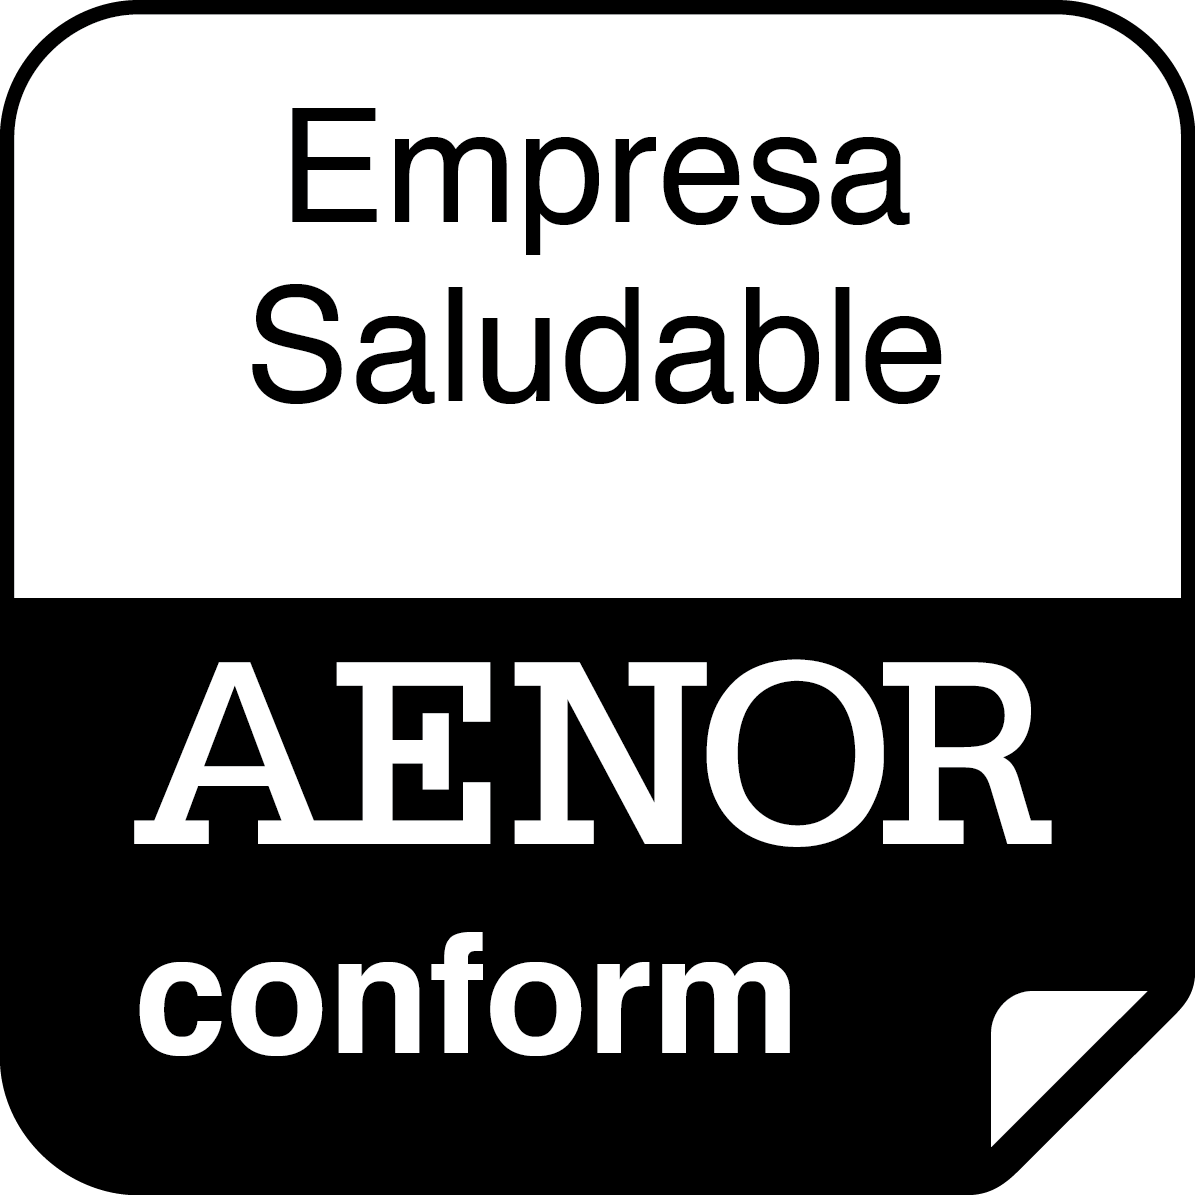 Empresa Saludable AENOR conform